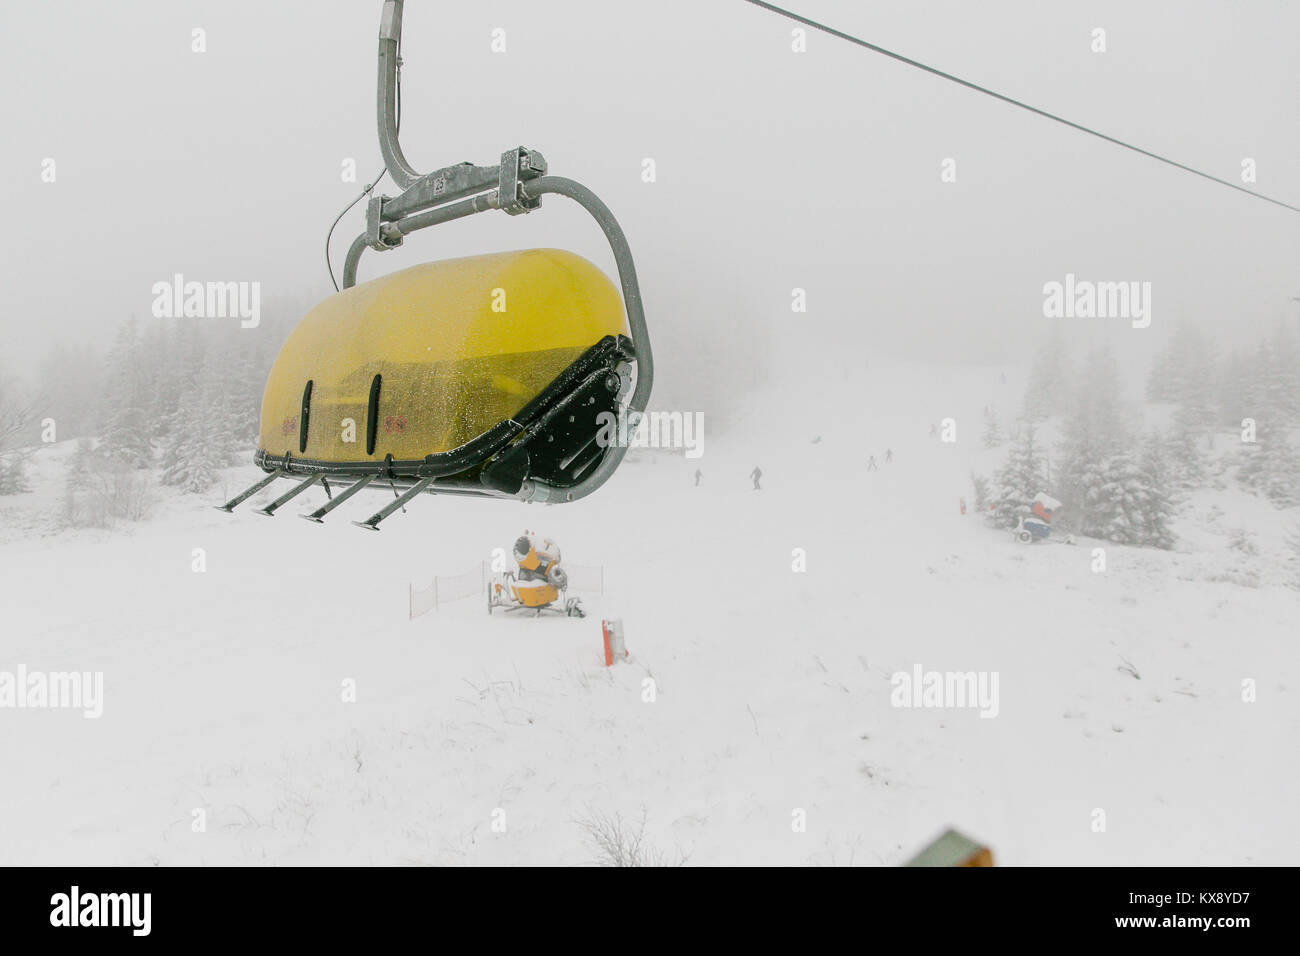 Ski chairlift bringing skiers and snowboarders up the Skrzyczne mountain after heavy snowfall on a misty winter Stock Photo